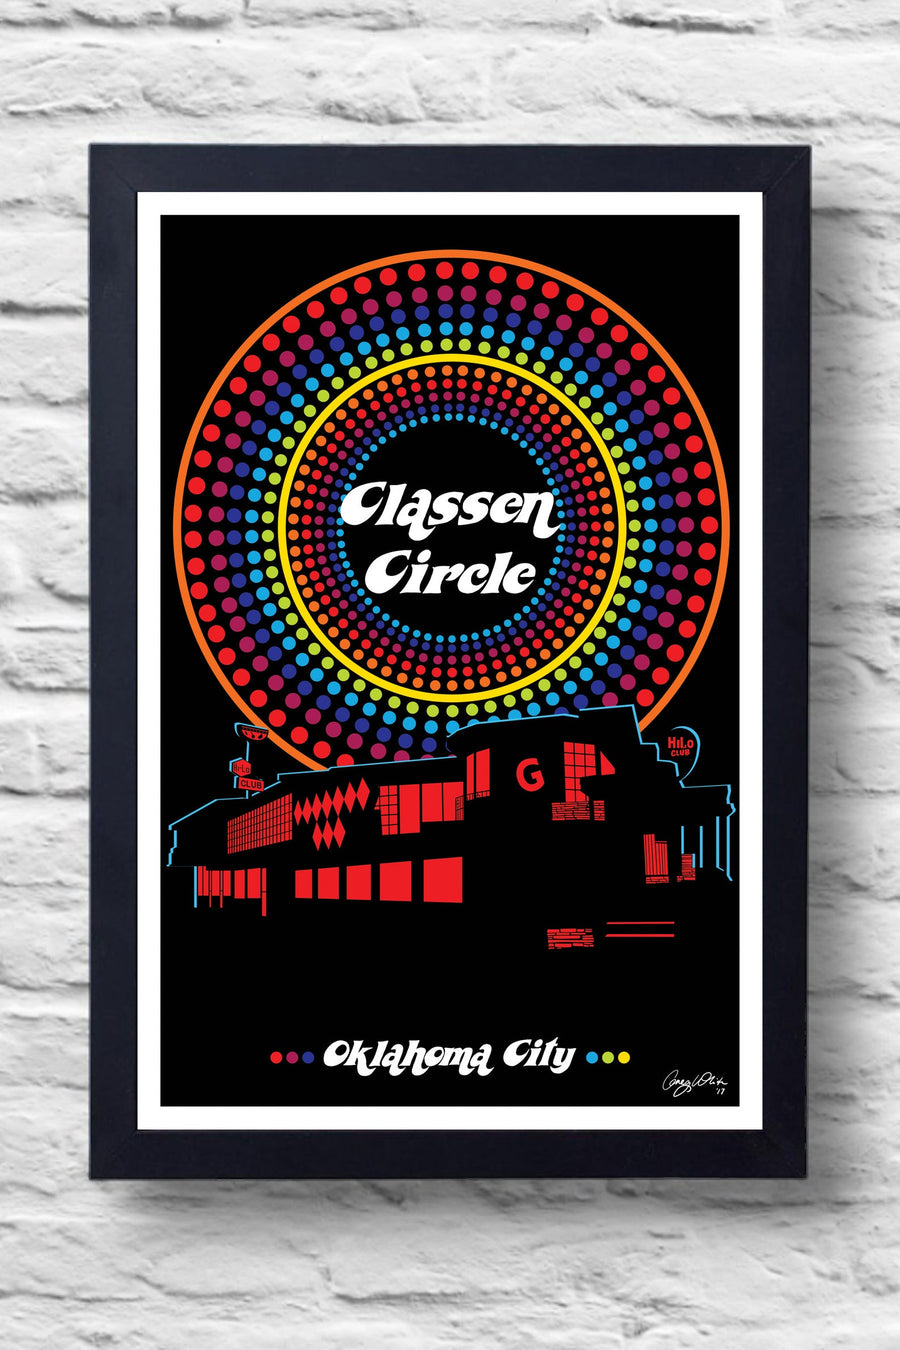 Classen Circle Print || Greg White Illustrations